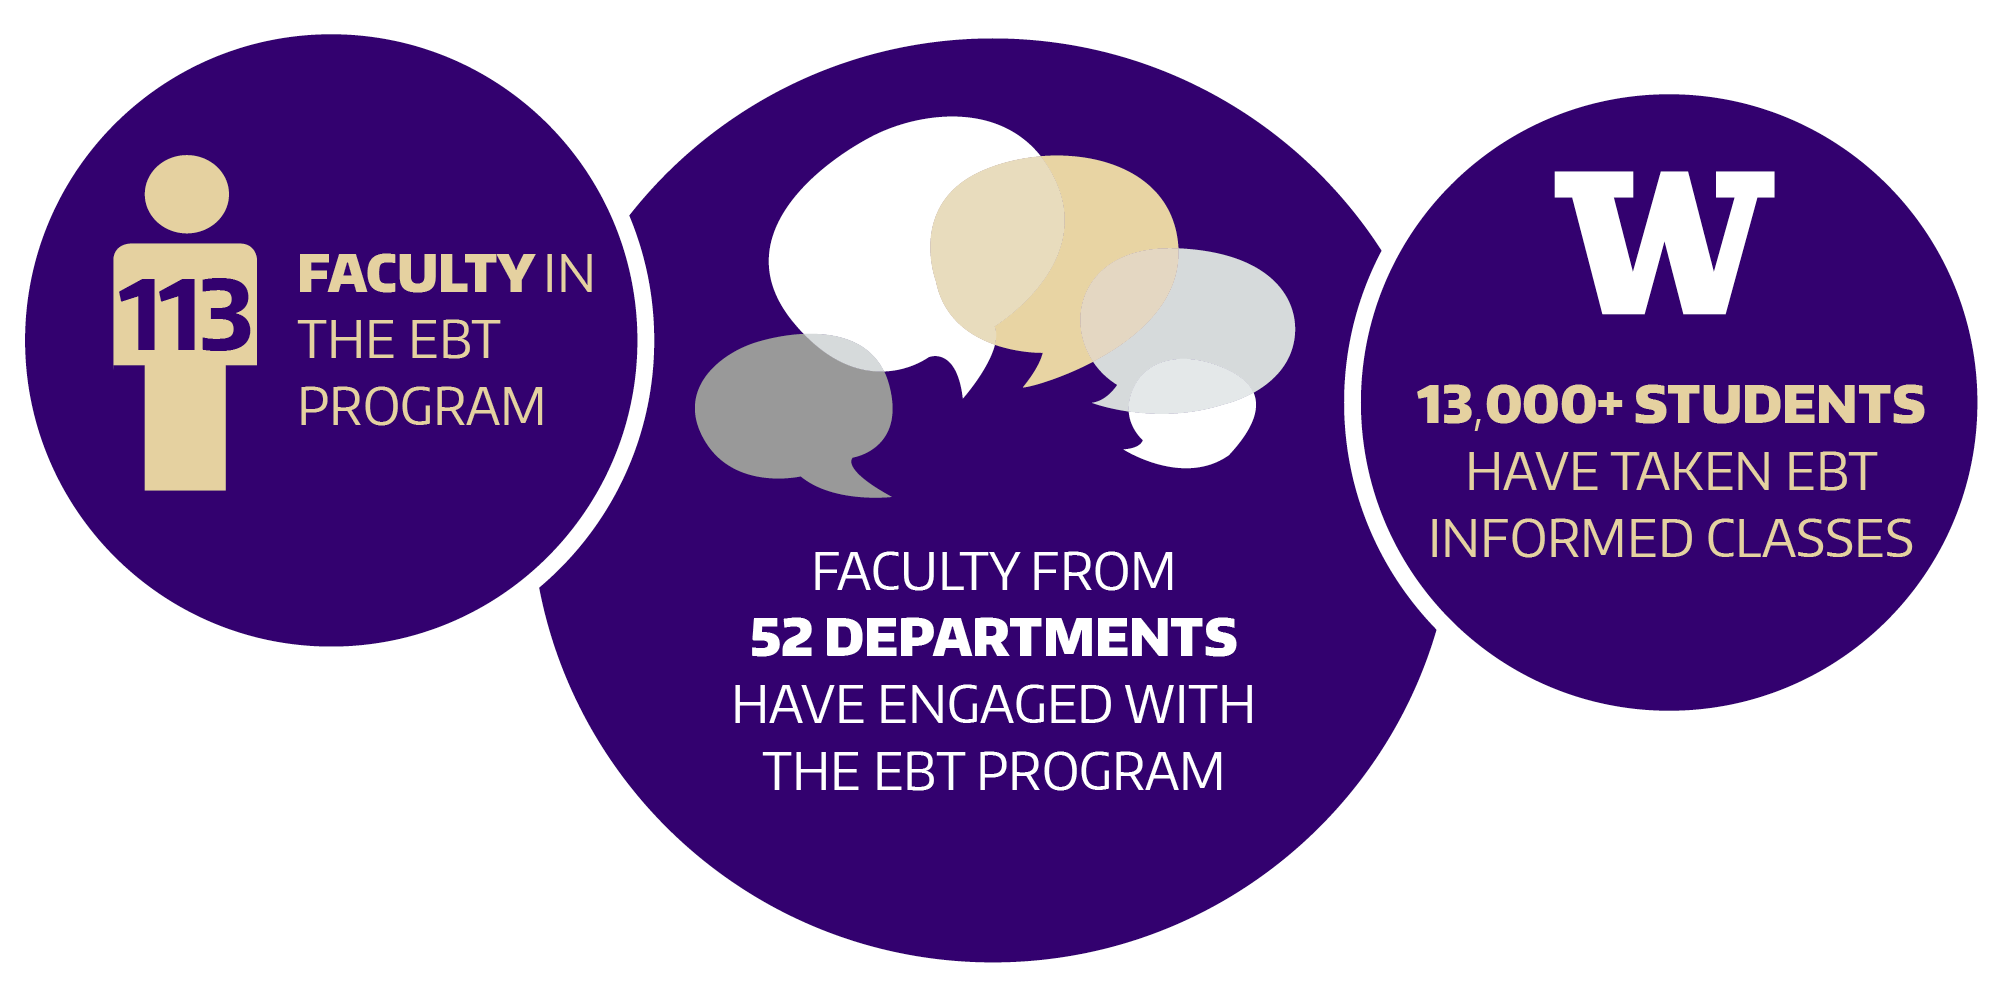 Over 113 UW instructors from 52 departments have participated in the program, and 13,000+ students have taken EBT-informed courses.